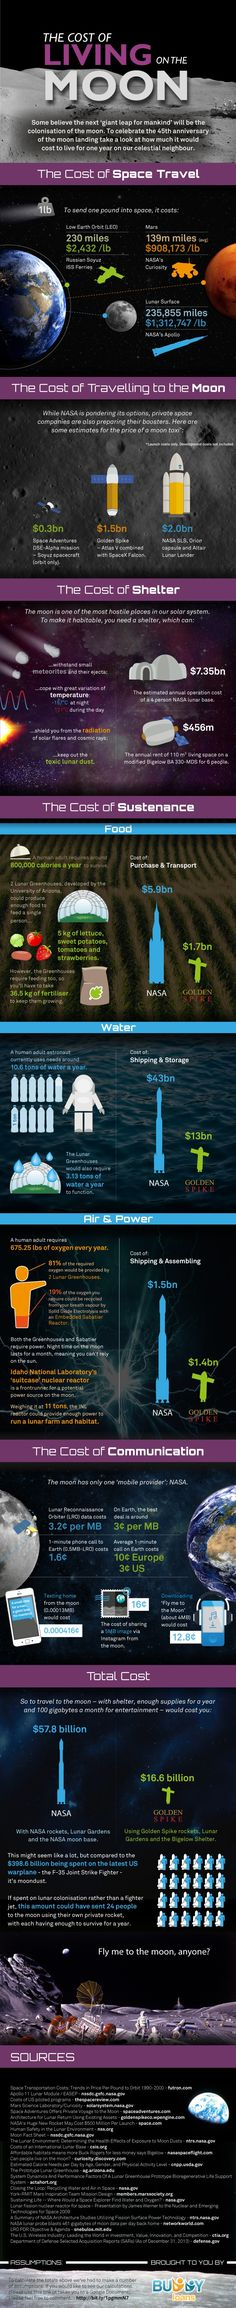 How Much It Costs To Live On The Moon | via Makeuseof